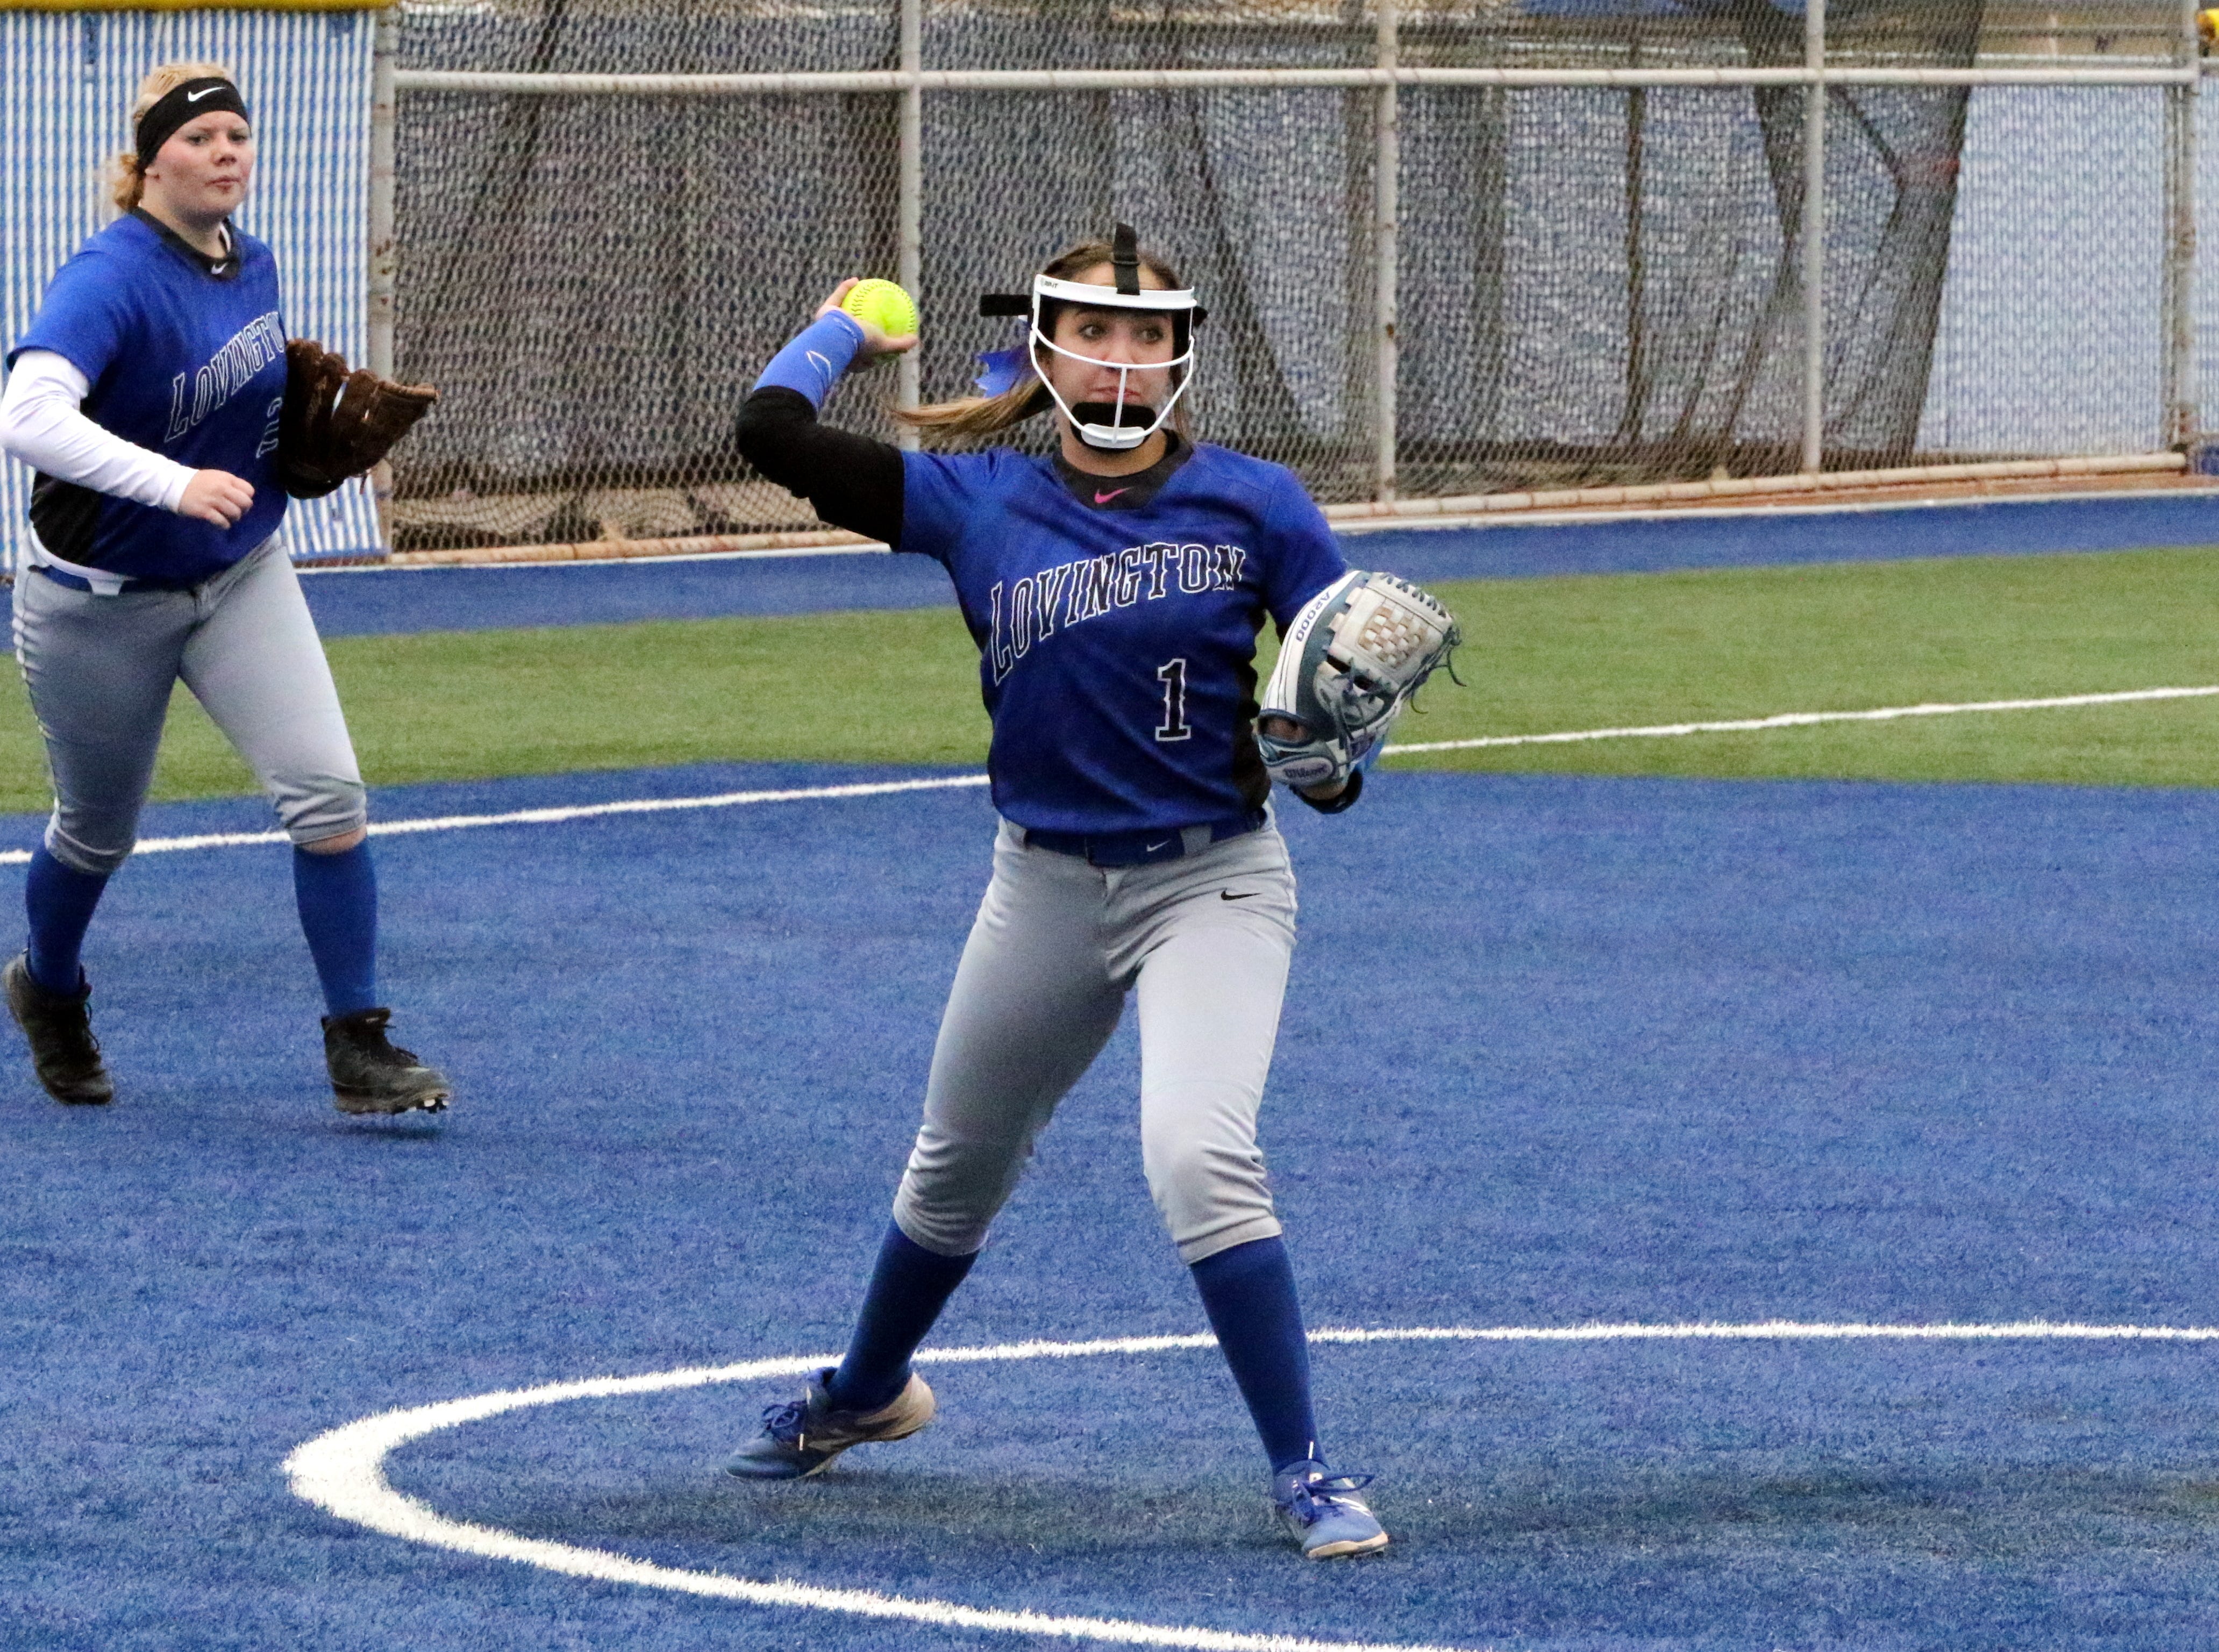 Kaeleigh Smith-Vega throws to first base to record an out after stopping a hotshot hit back to her in the first game of Lovington's doubleheader against Carlsbad on Friday.